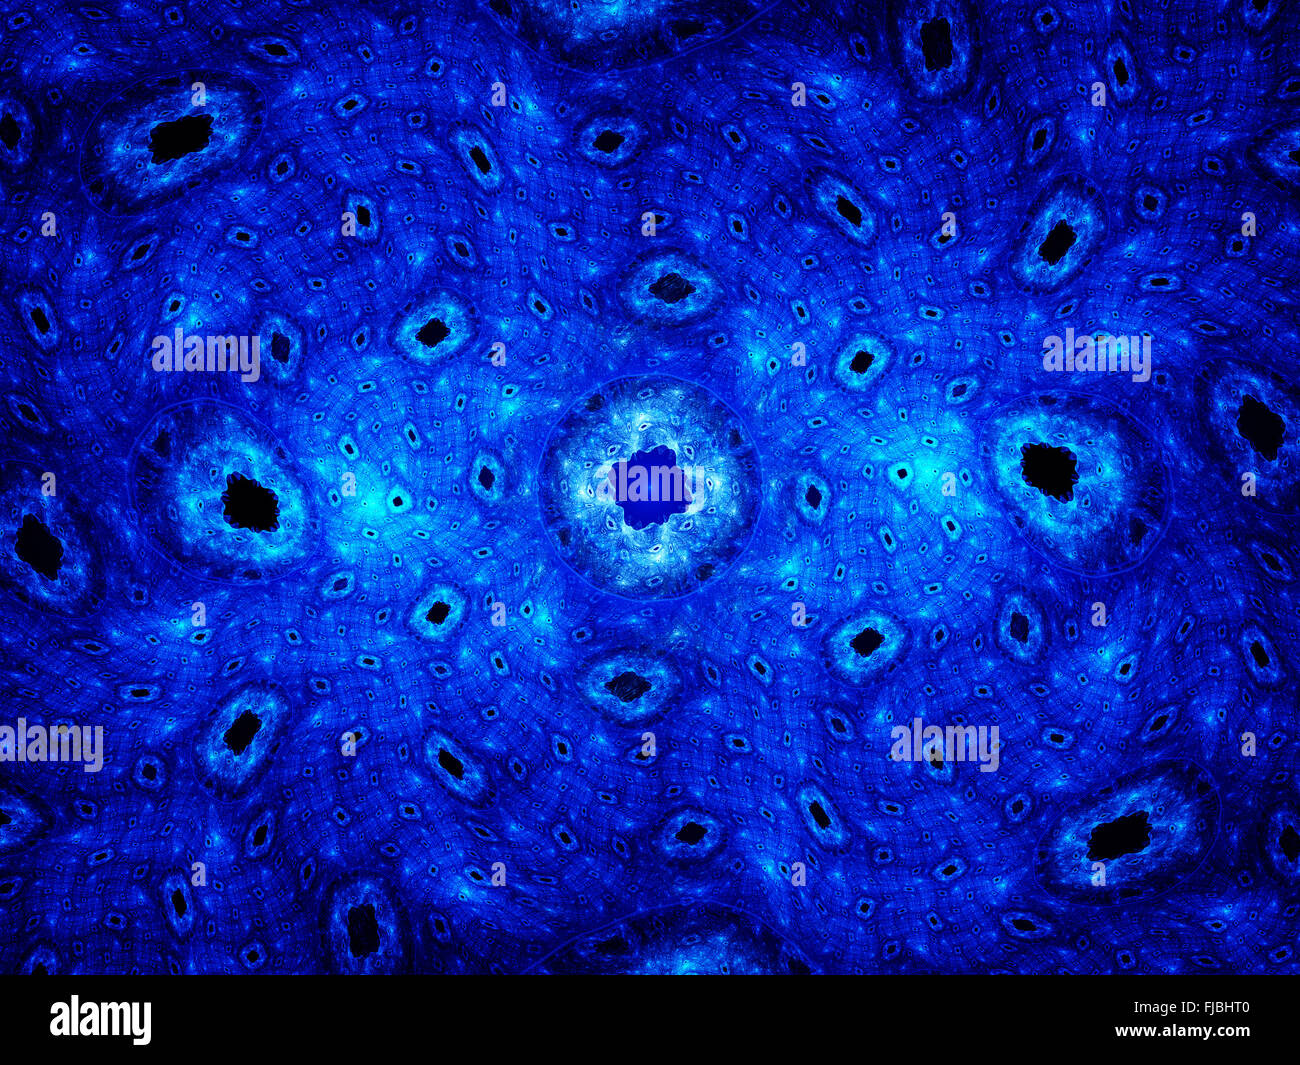 Blue glowing cells, computer generated fractal background Stock Photo